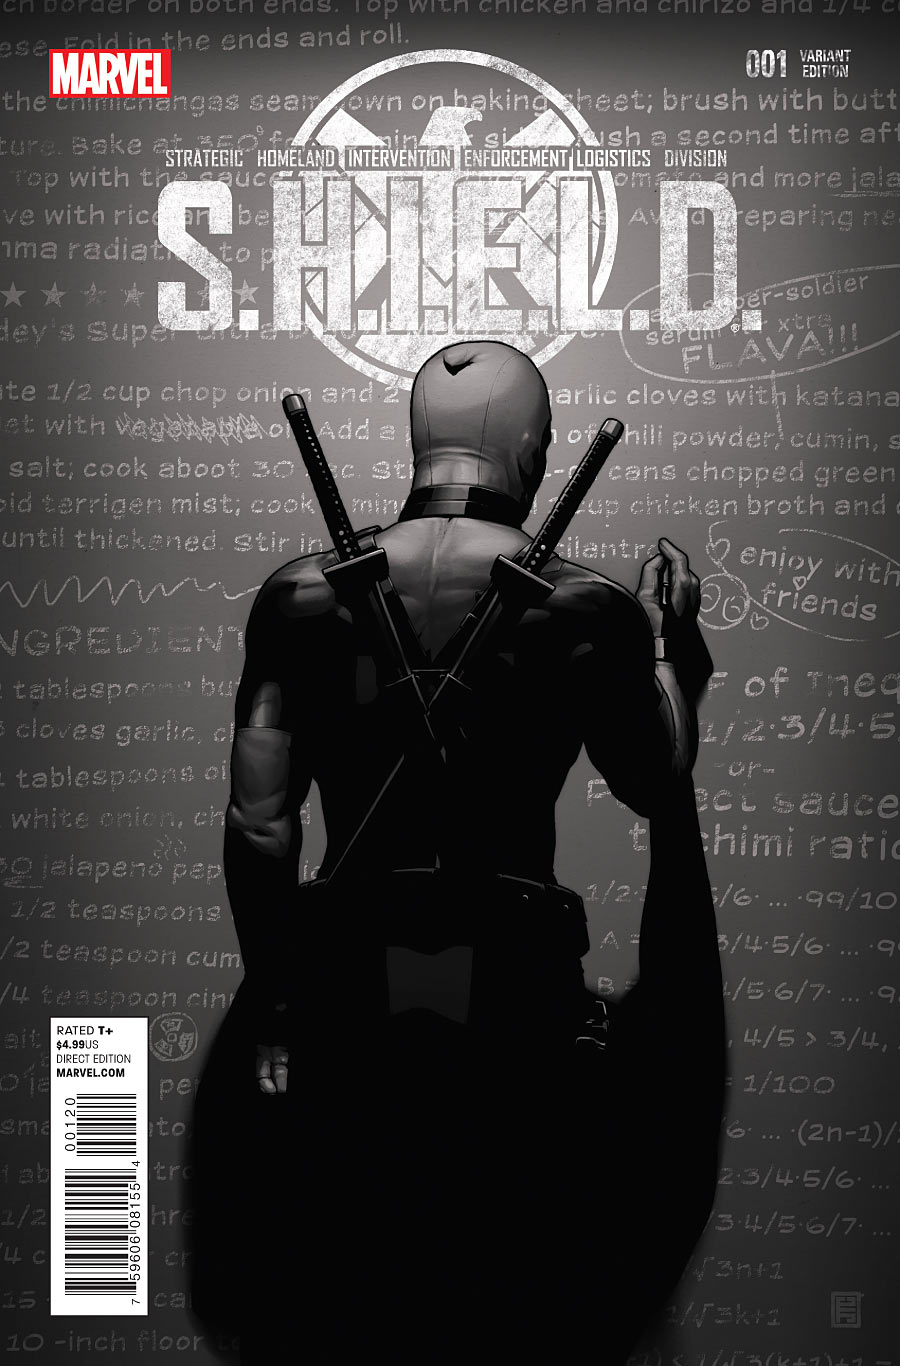 Agents of Shield Cover Shield 1 Variant Cover 2